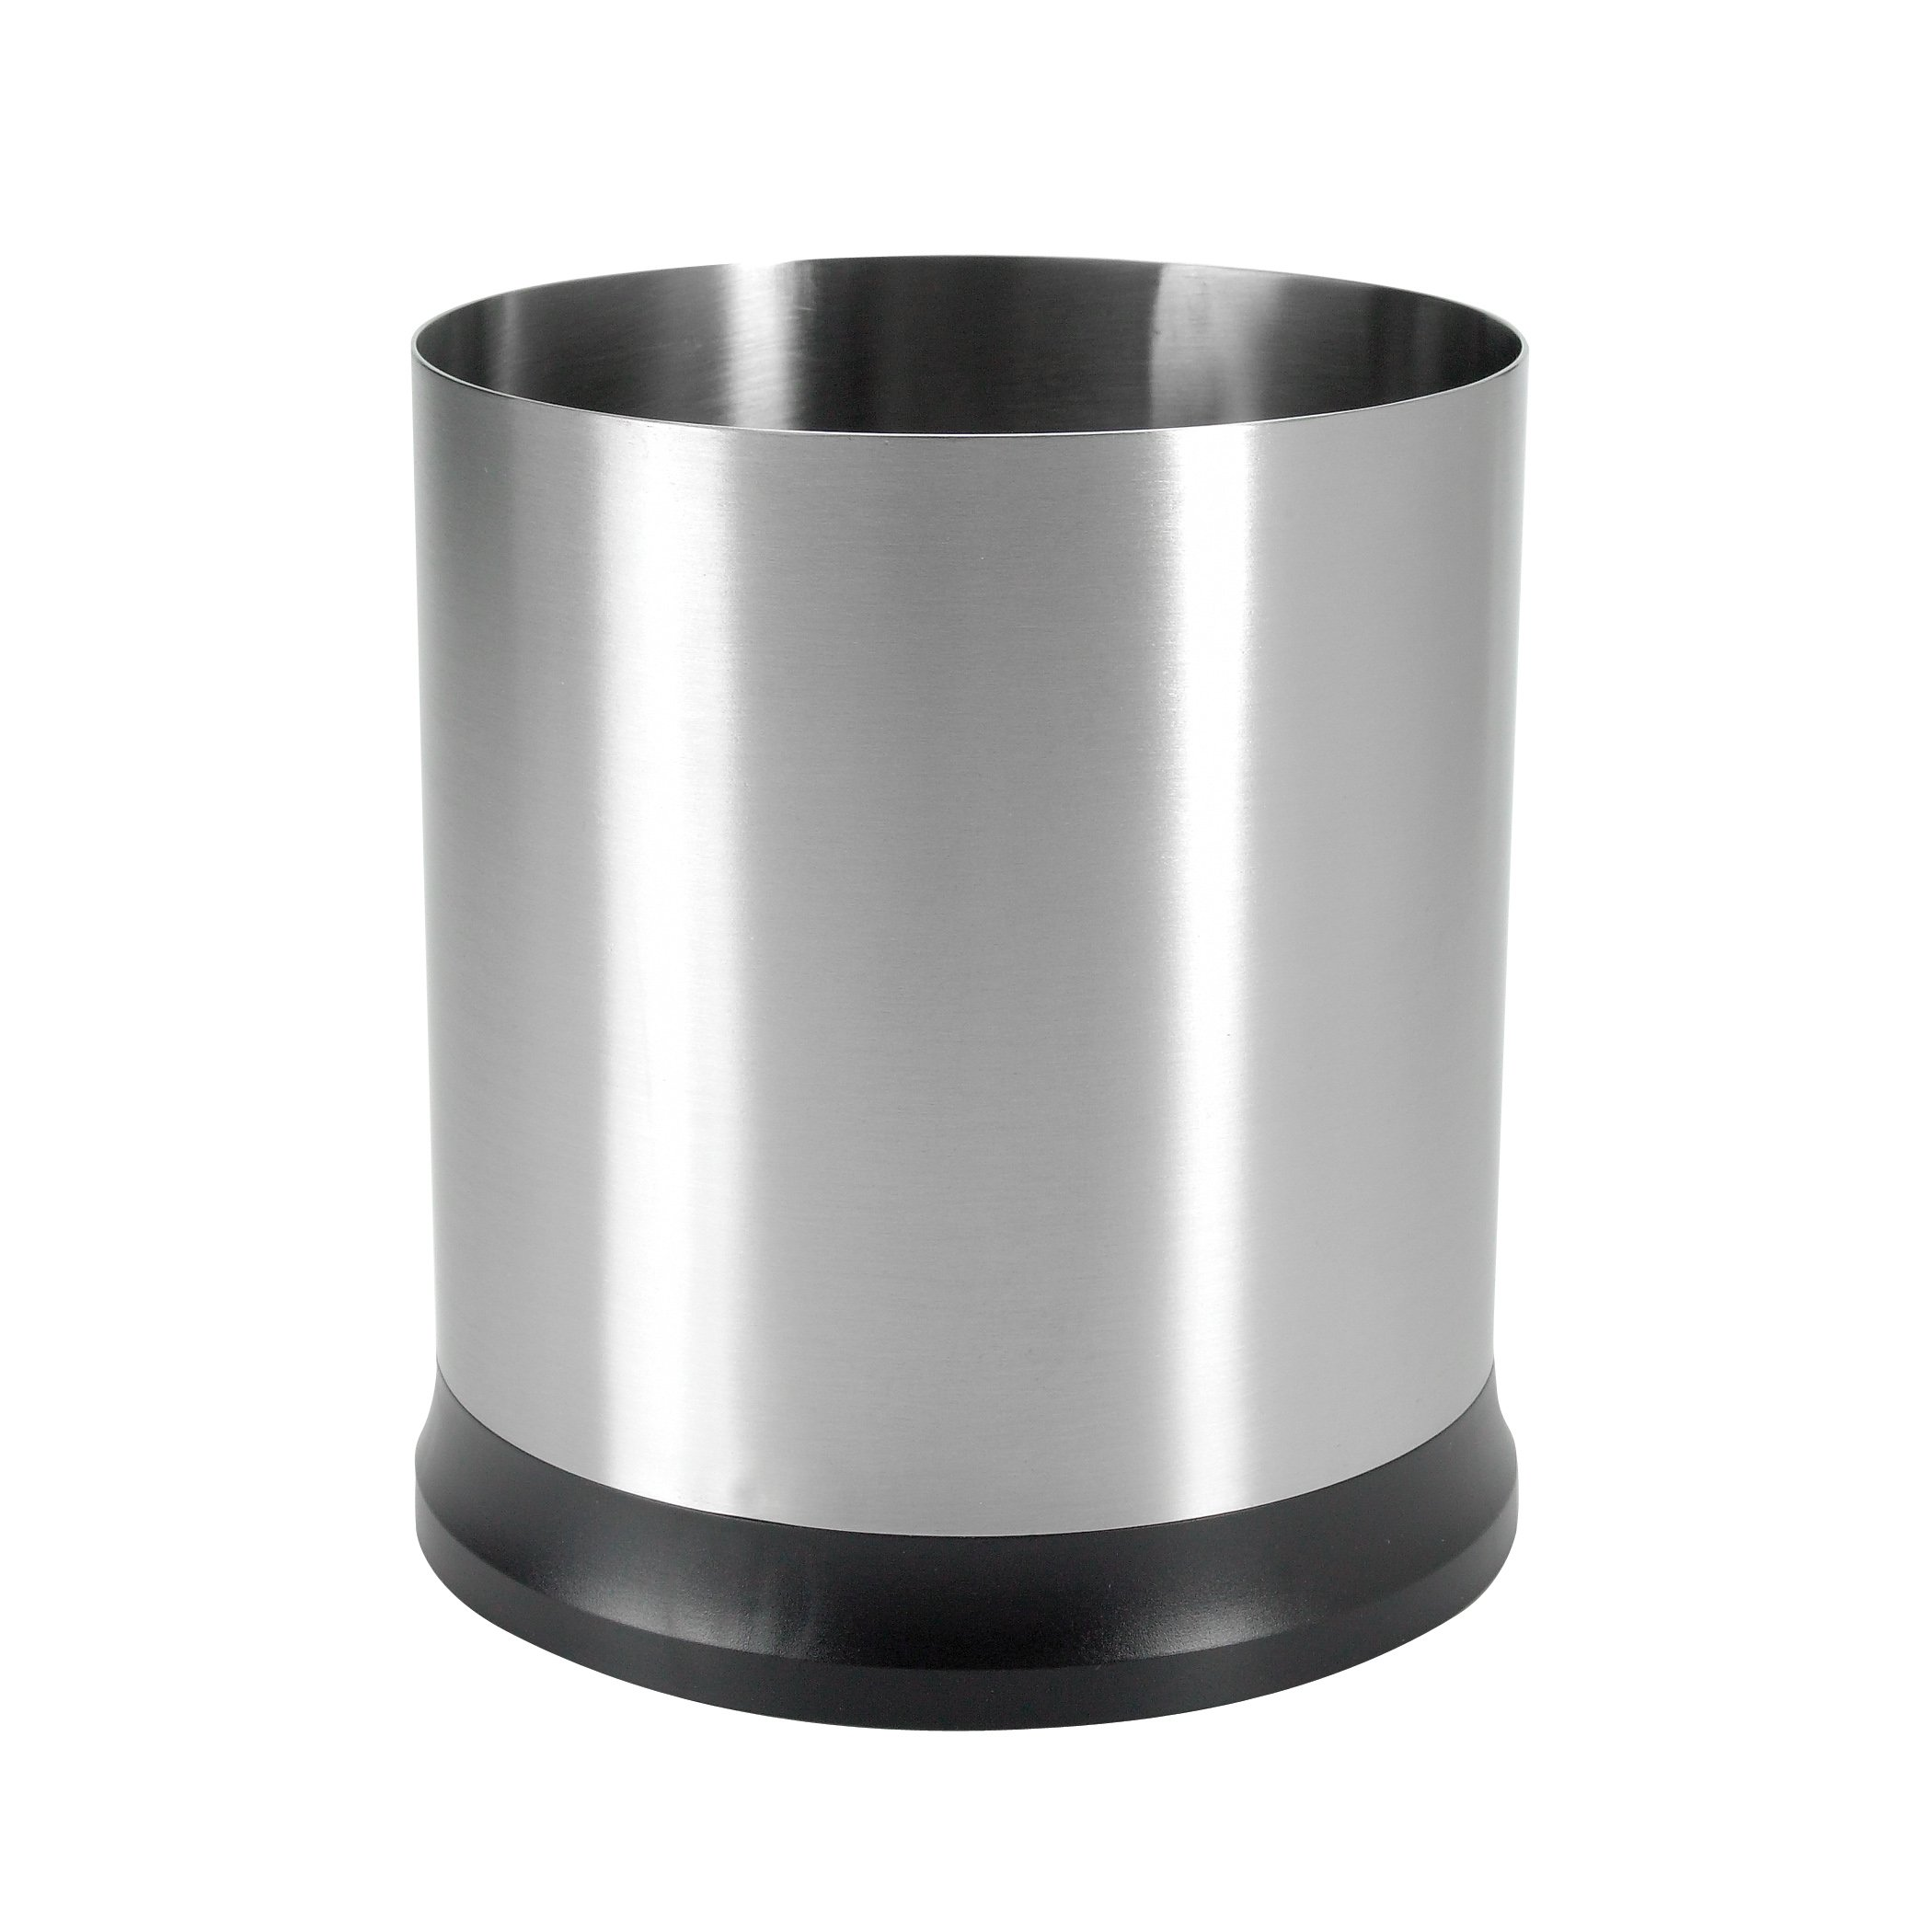 OXO Good Grips Stainless Steel Rotating Utensil Holder by OXO